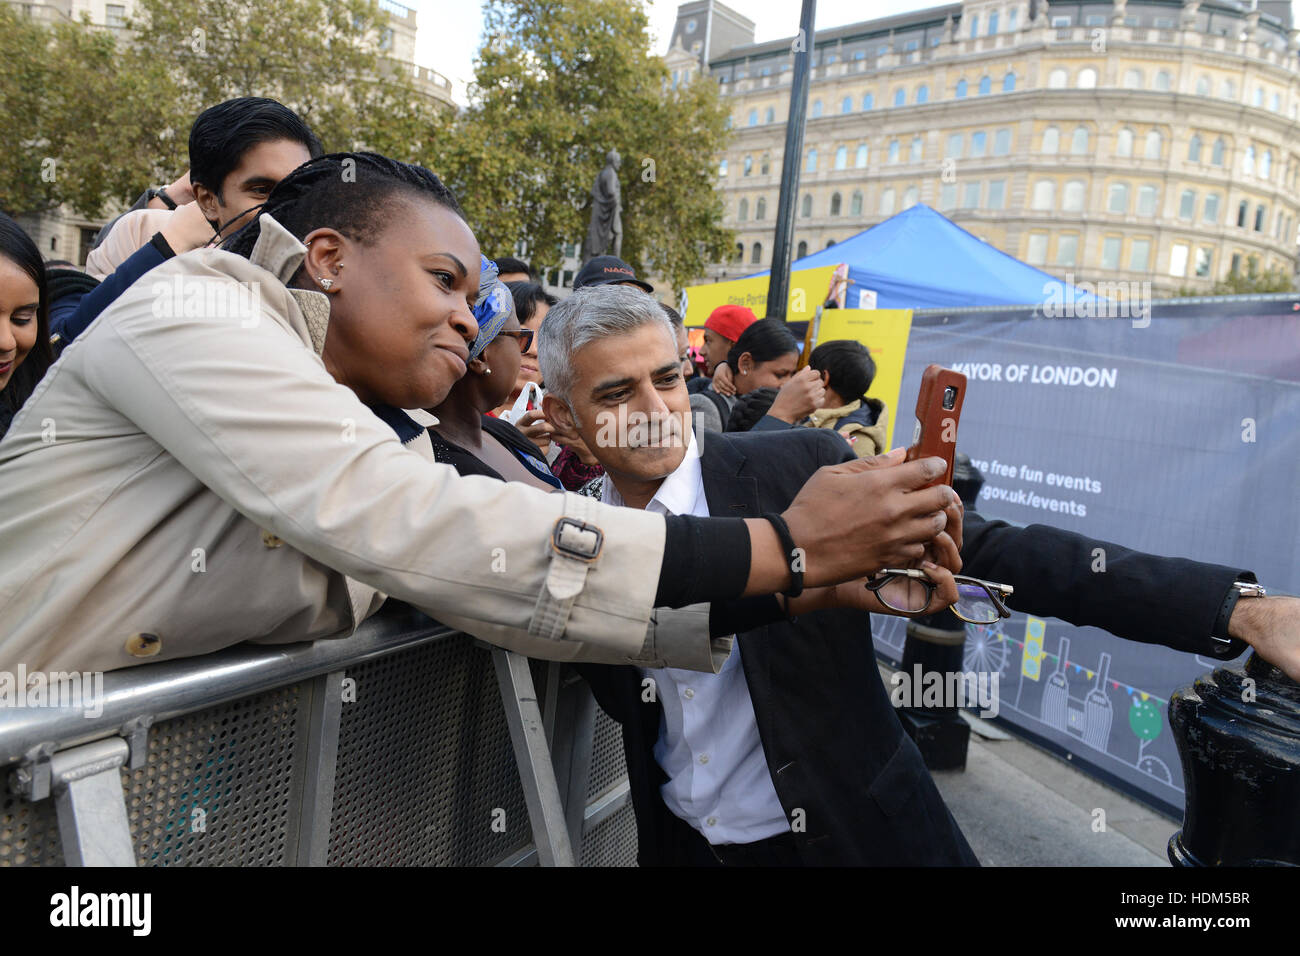 London Mayor Sadiq Khan is seen taking selfies in Trafalgar Square as it hosts 'Africa on the Square' to celebrate - Stock Image